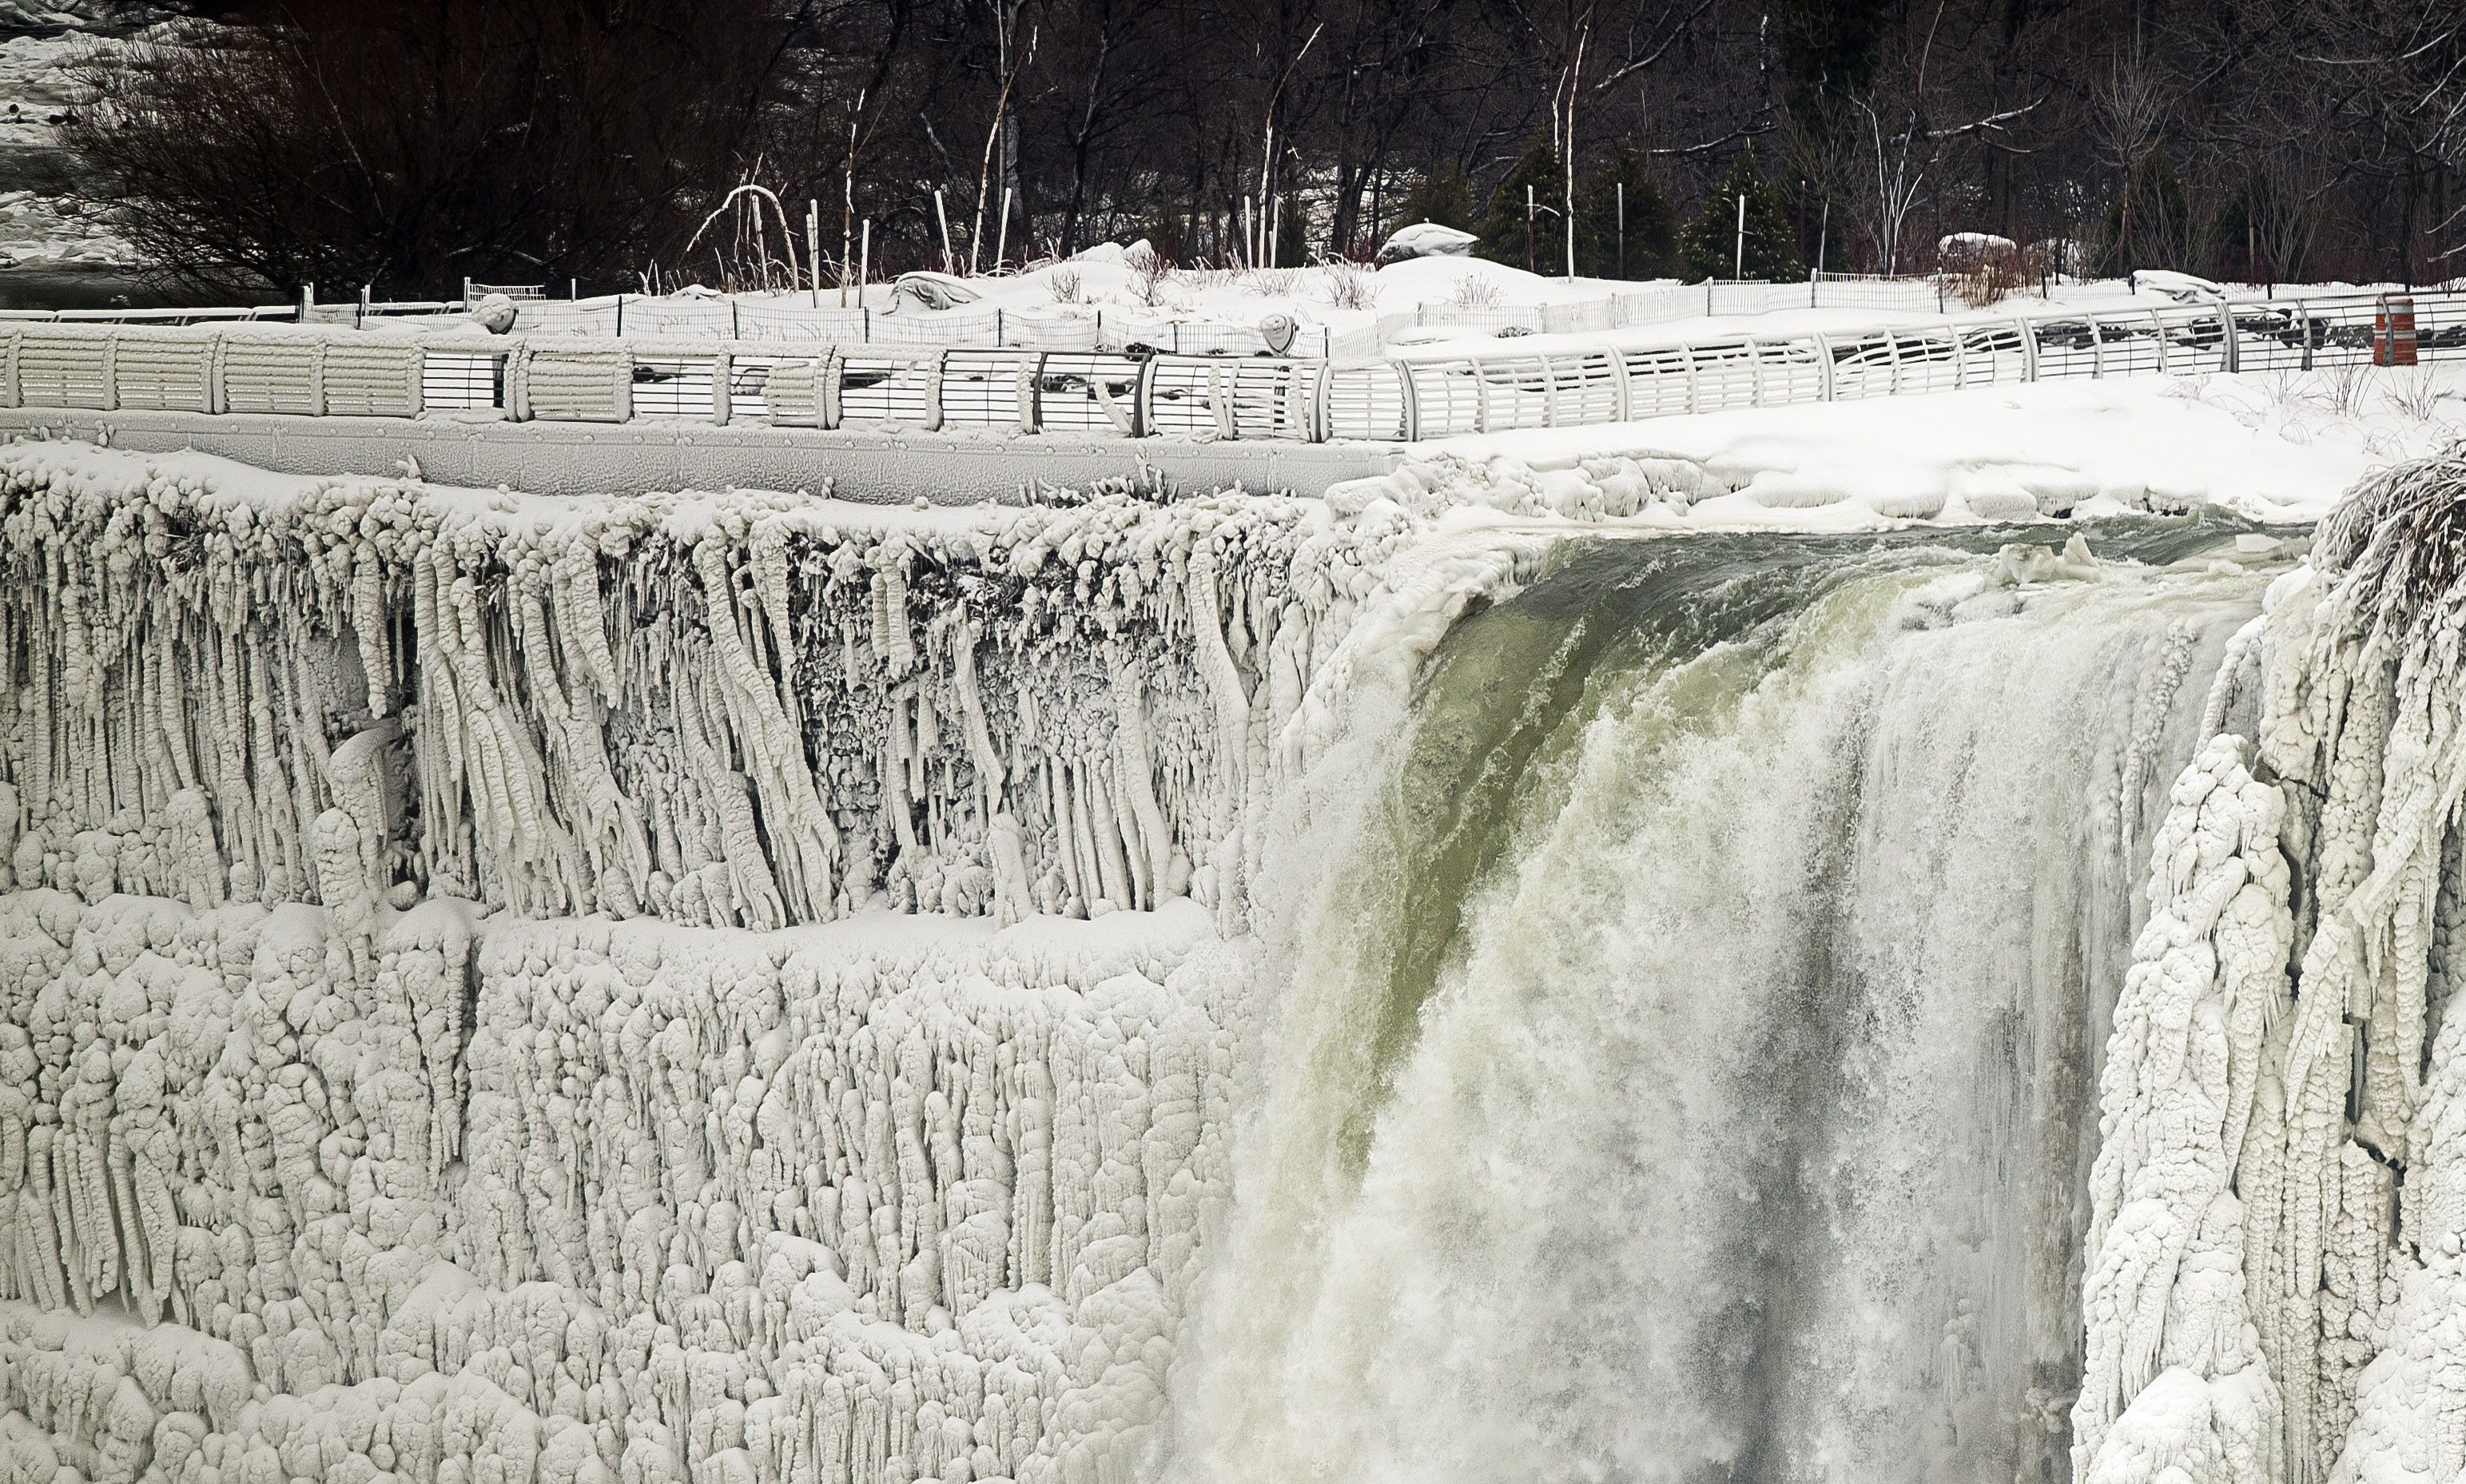 Water still cascades over Niagara Falls on 10 January 2014. The famous falls at the US-Canadian border nearly froze during the recent cold snap which affected some 240 million people in the US and southern Canada . (AFP PHOTO/GEOFF ROBINS)